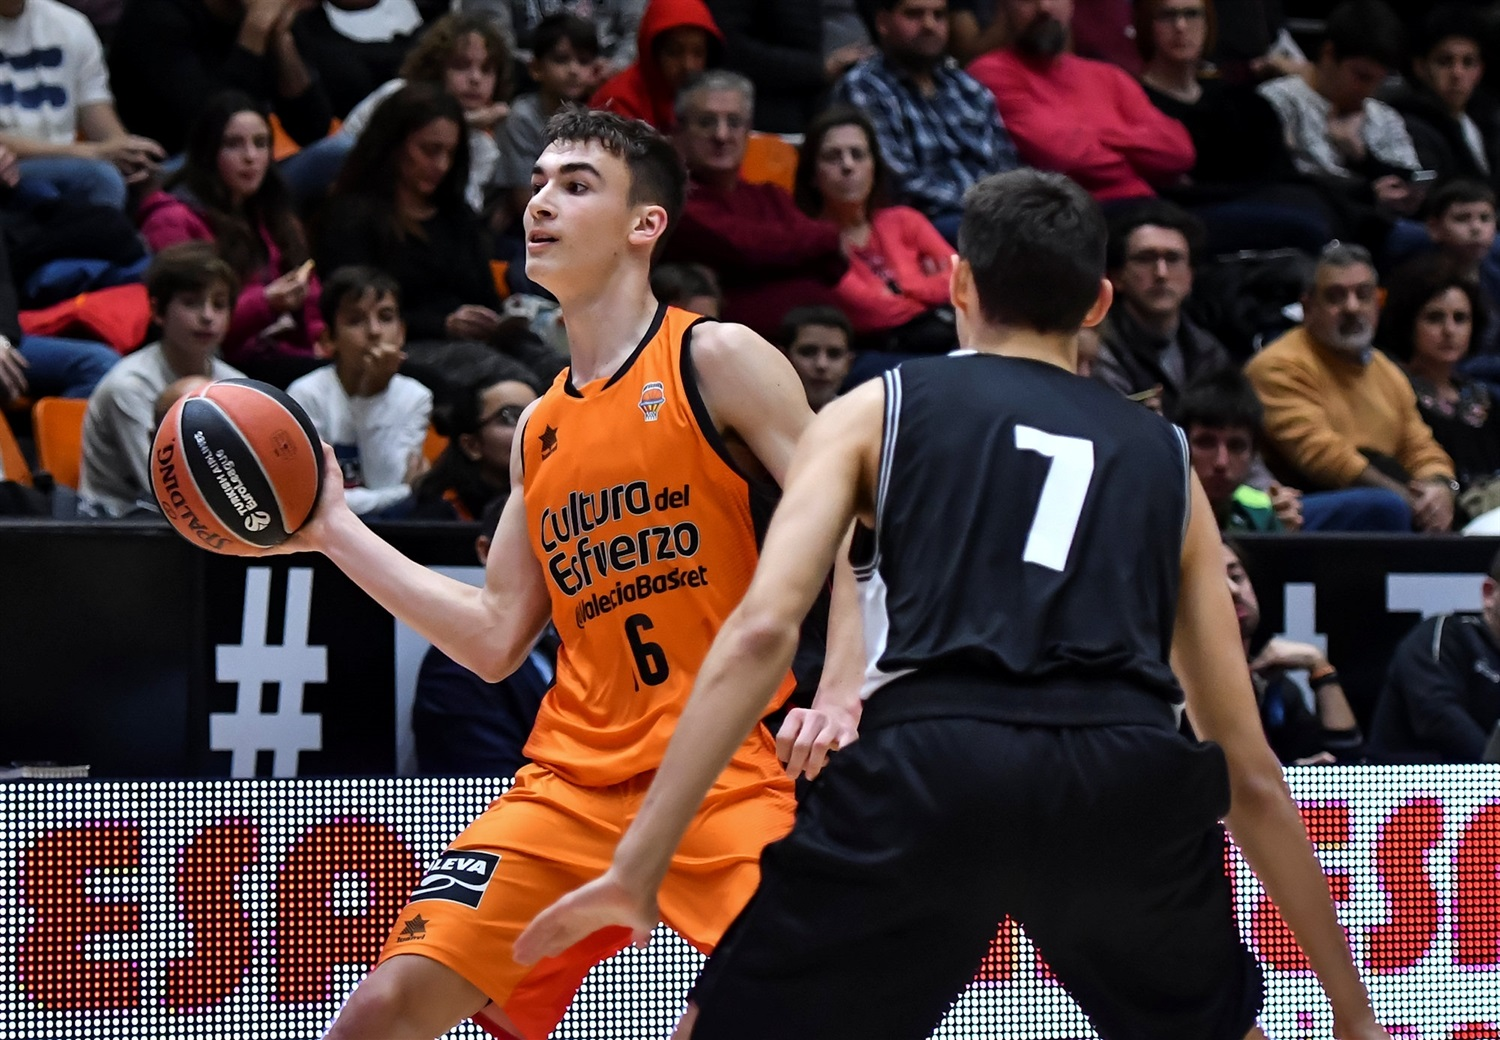 Millan Jimenez - U18 Valencia Basket (photo Miguel Angel Polo - Valencia) - JT18